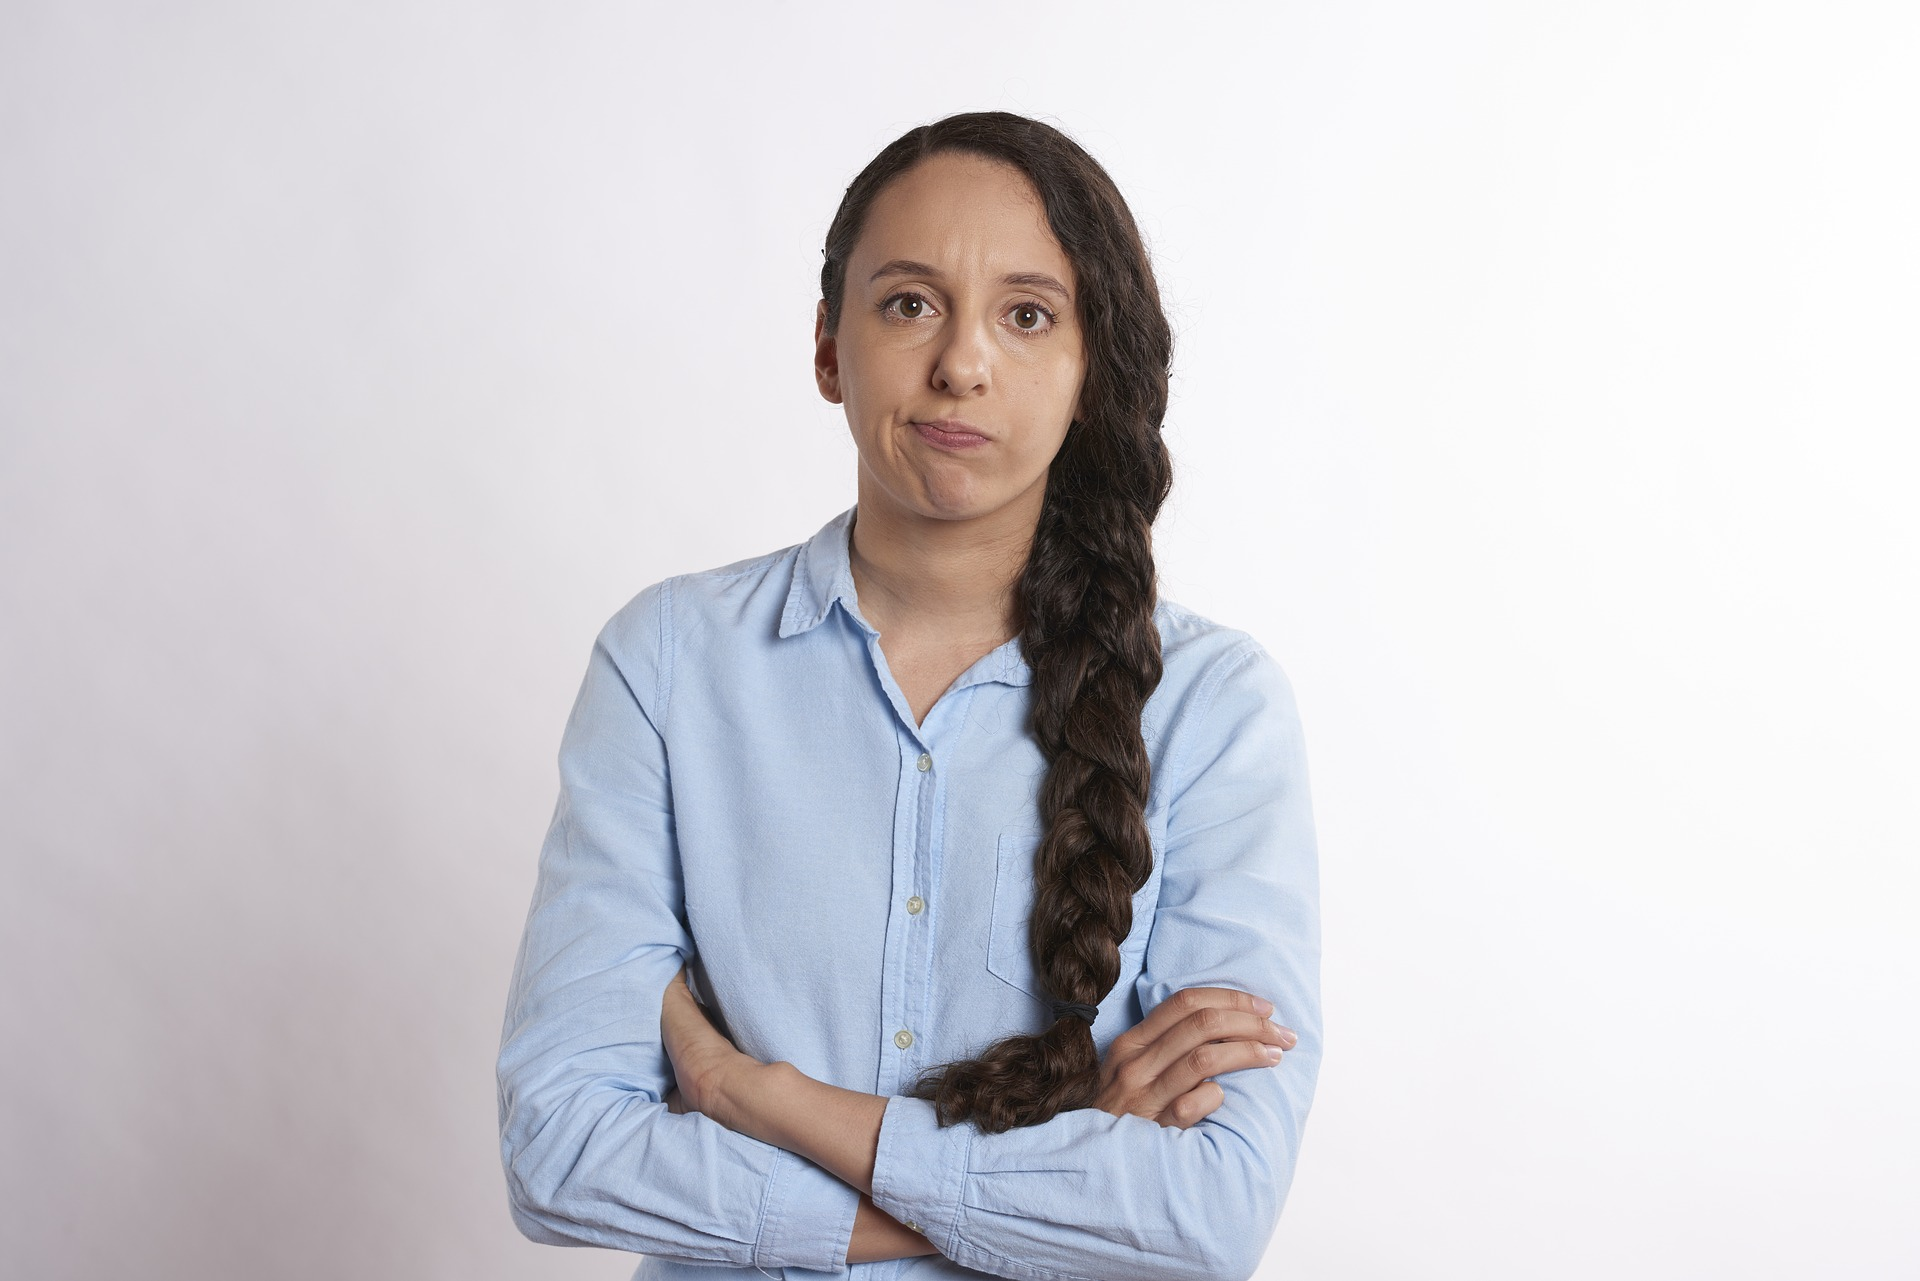 Woman looking frustrated with crossed arms